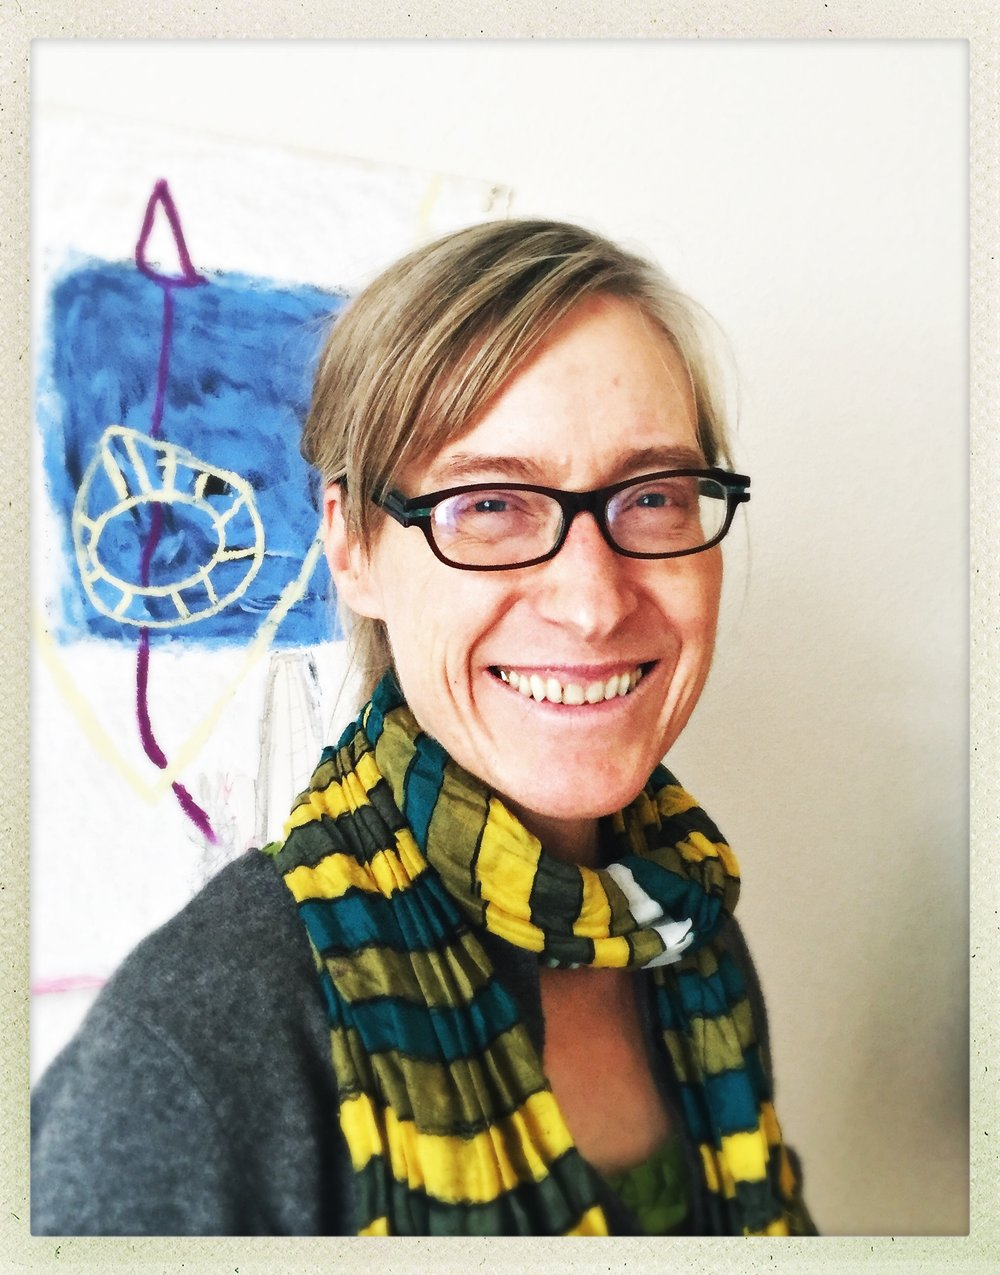 Nona Caspers  is the author of  Heavier Than Air , which was honored with the AWP Grace Paley Prize in Short Fiction and listed as a  New York Times Book Review  Editors' Choice. Her work has been supported with a NEA Fellowship, an  Iowa Review  Fiction Award, a LAMBDA nomination, and the Joseph Henry Jackson Literary Grant and Award, among other honors. Individual stories have appeared in  The Kenyon Review, Epoch, Black Warrior Review  and  Glimmer Train . She is a Professor of Creative Writing at San Francisco State University and lives in San Francisco.